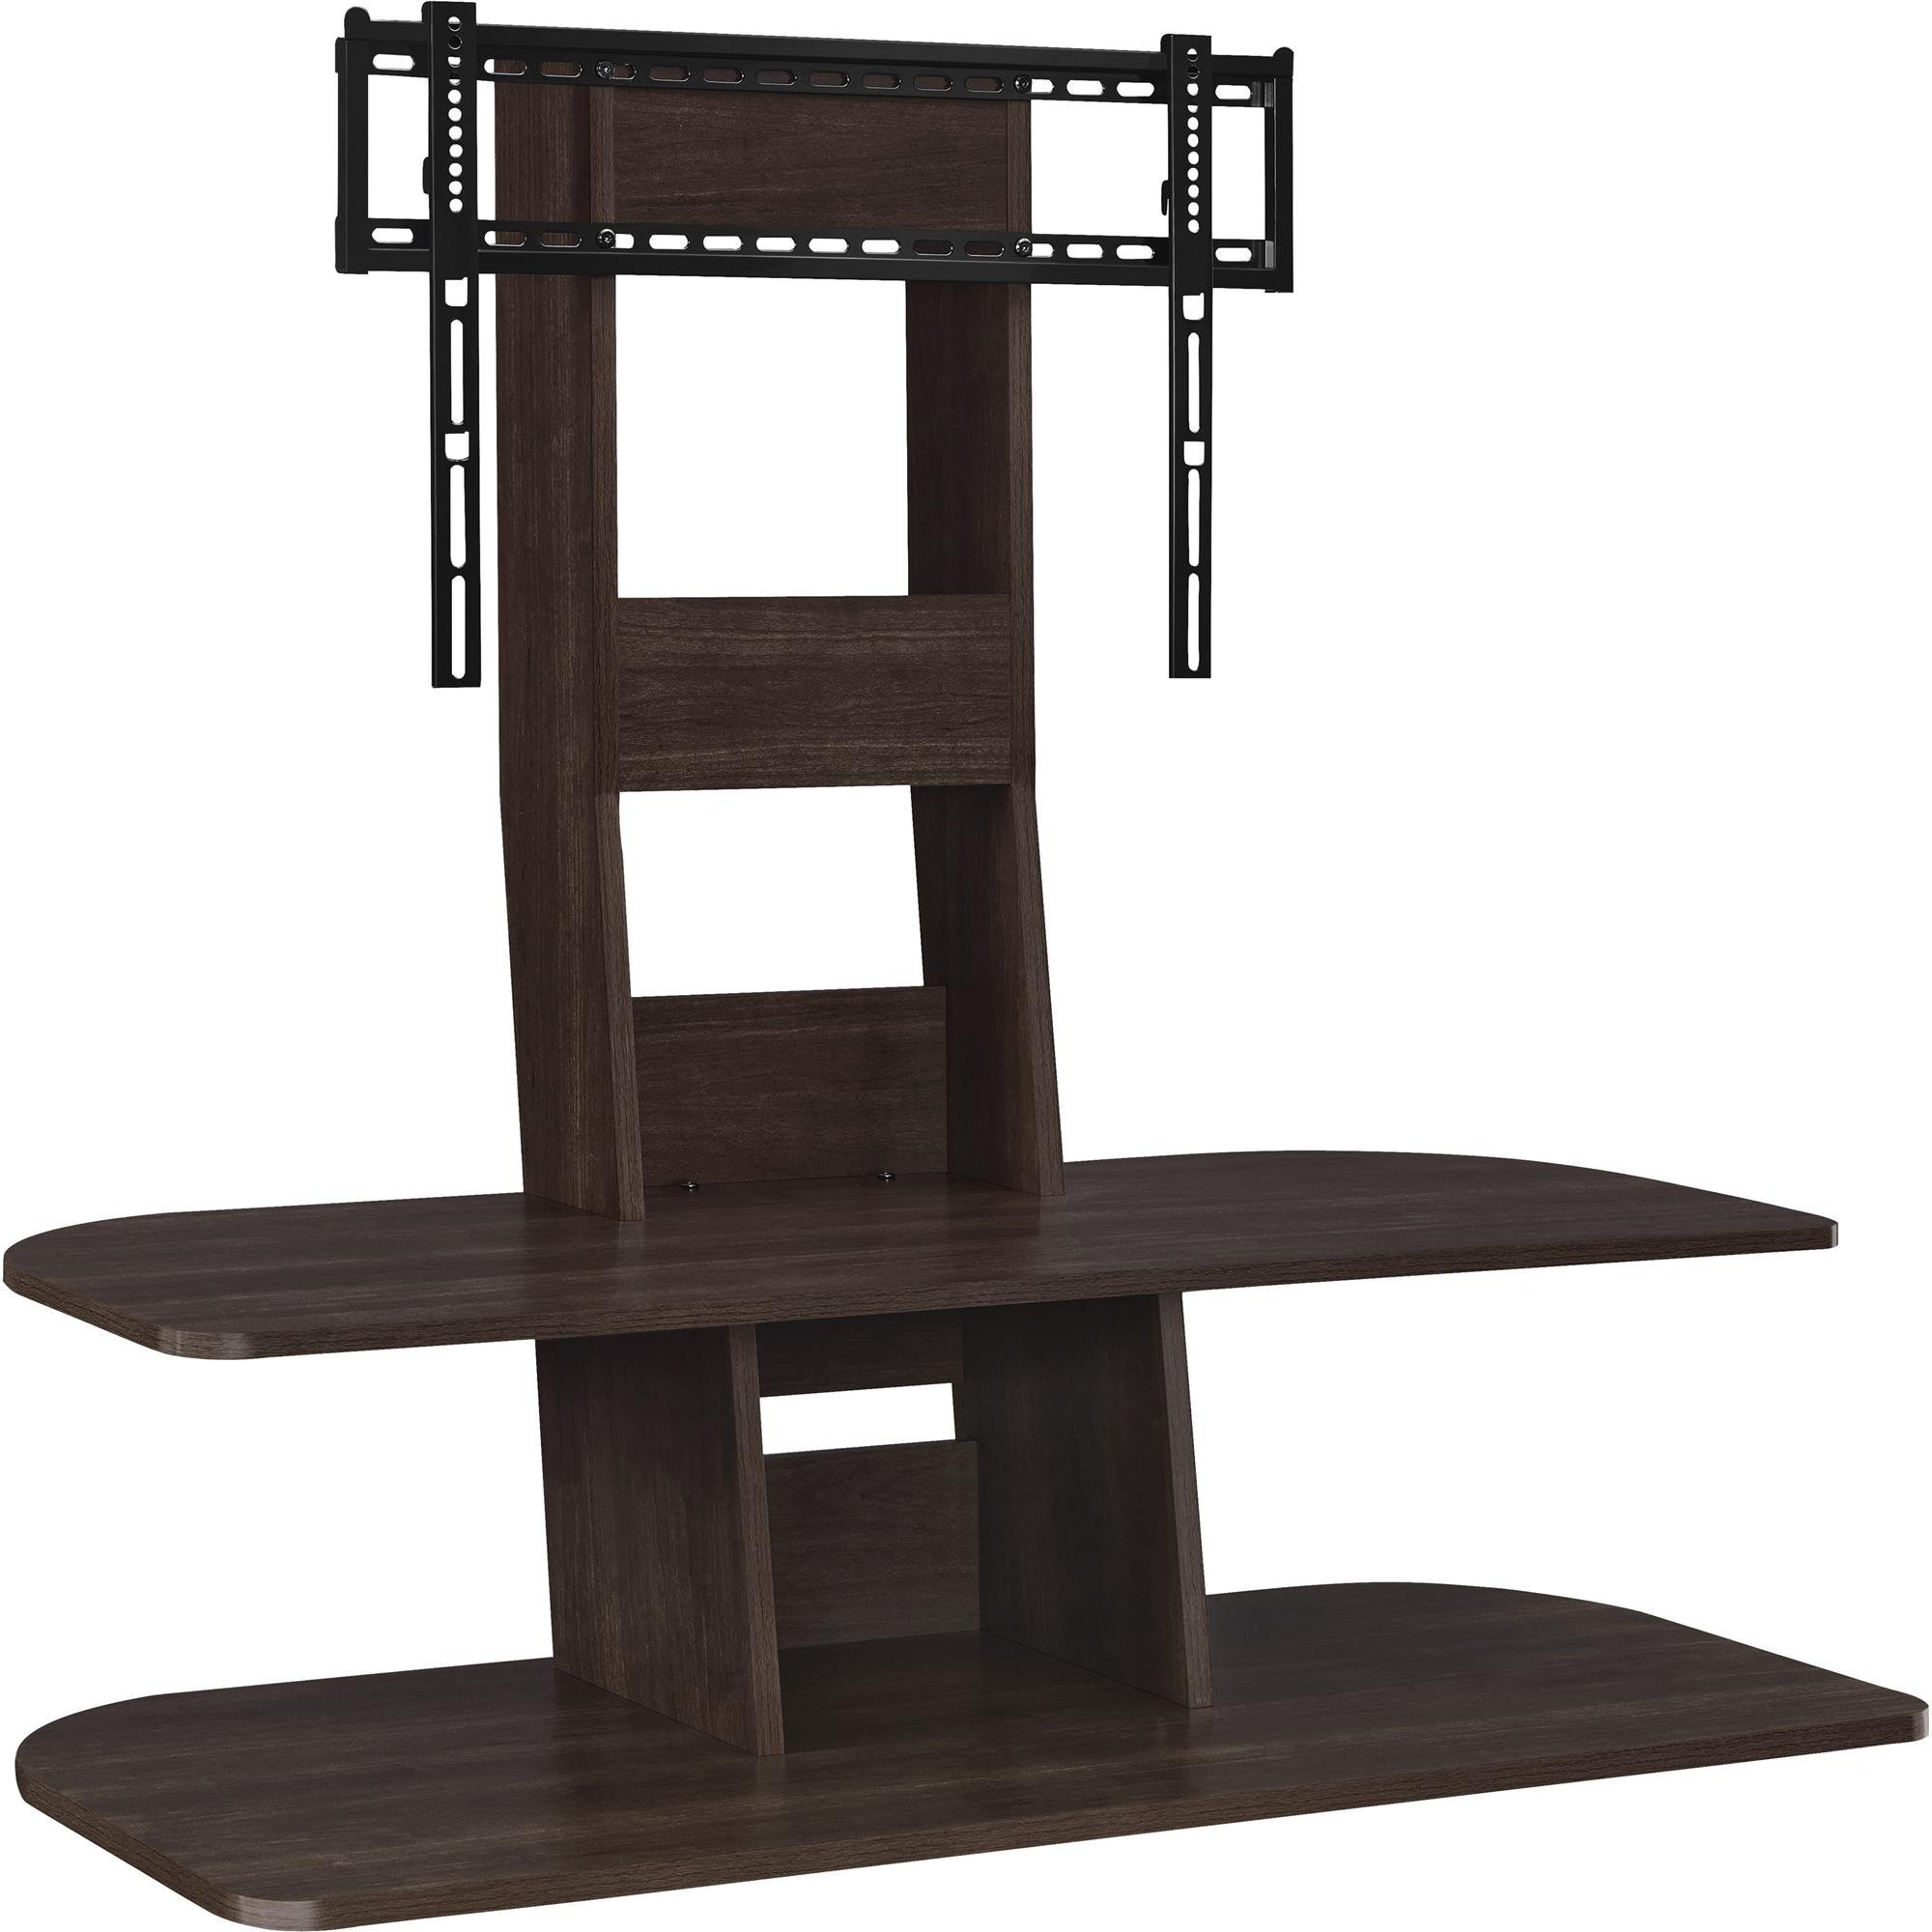 Ameriwood Home Galaxy TV Stand with Mount for TVs up to 65'' Wide, Espresso by Ameriwood Home